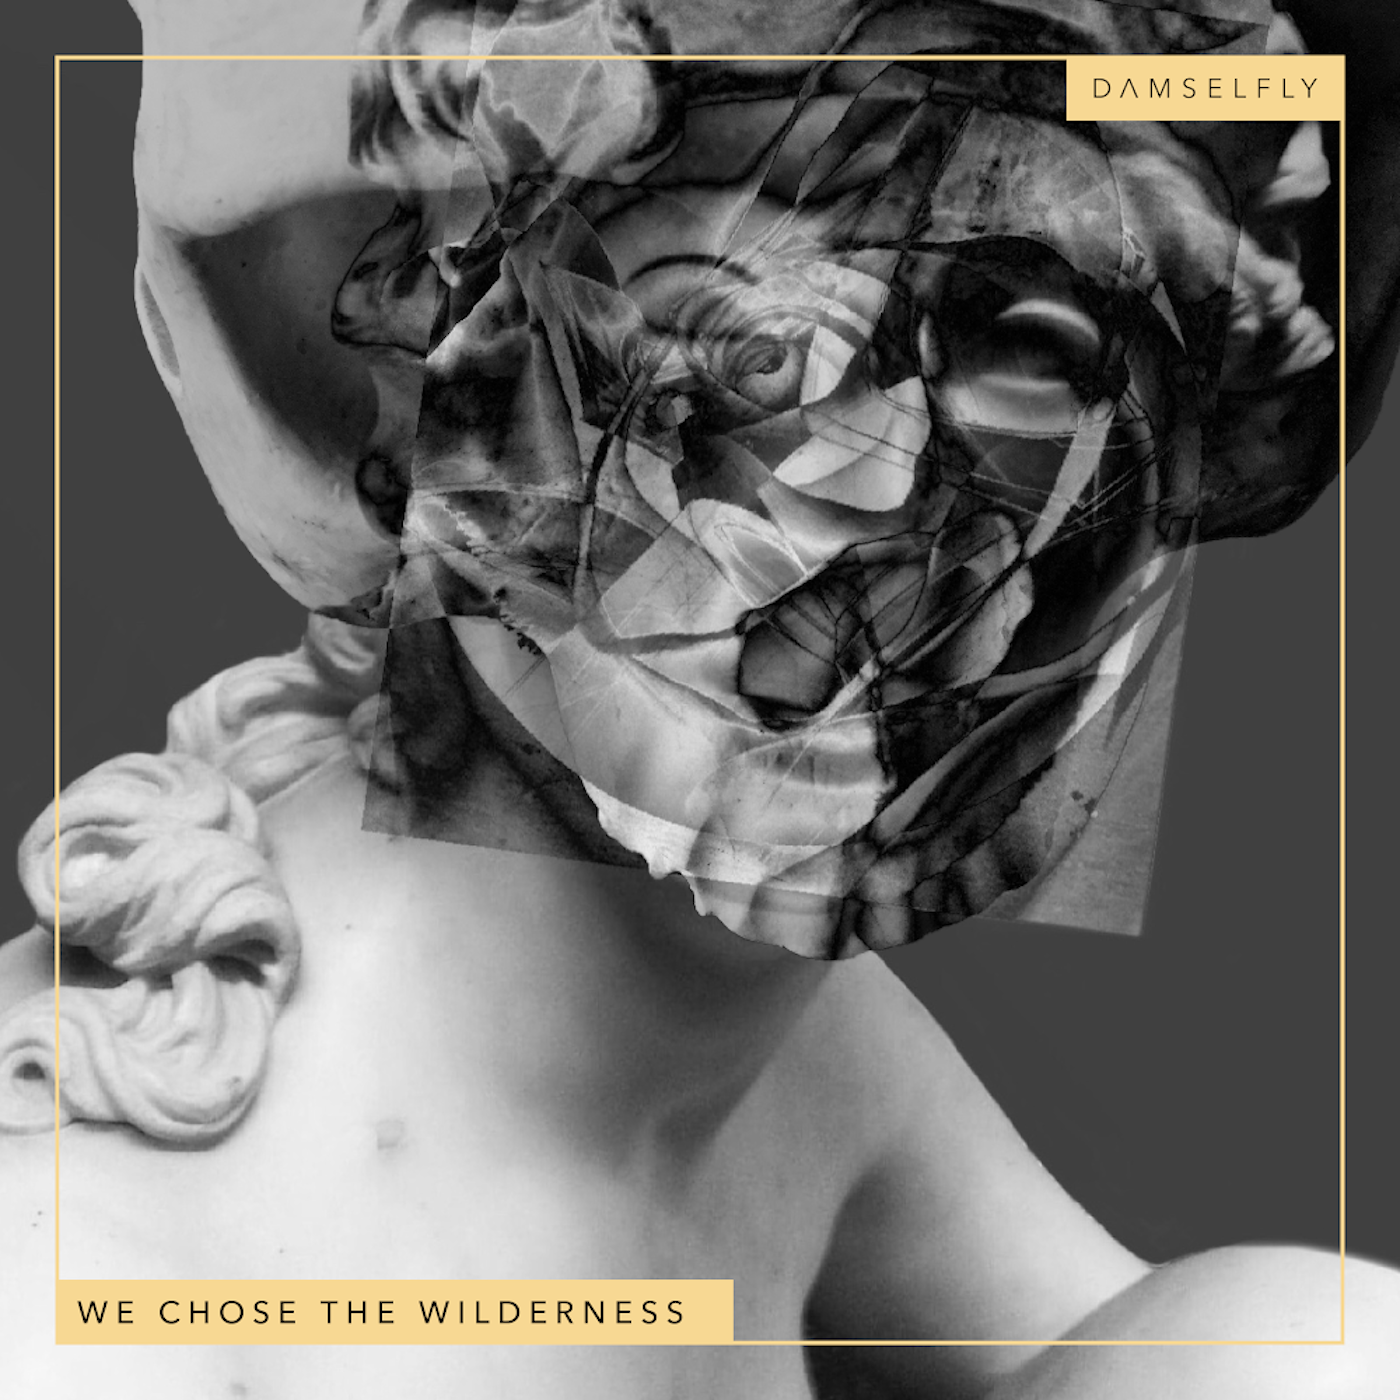 Damselfly - We Chose the Wilderness